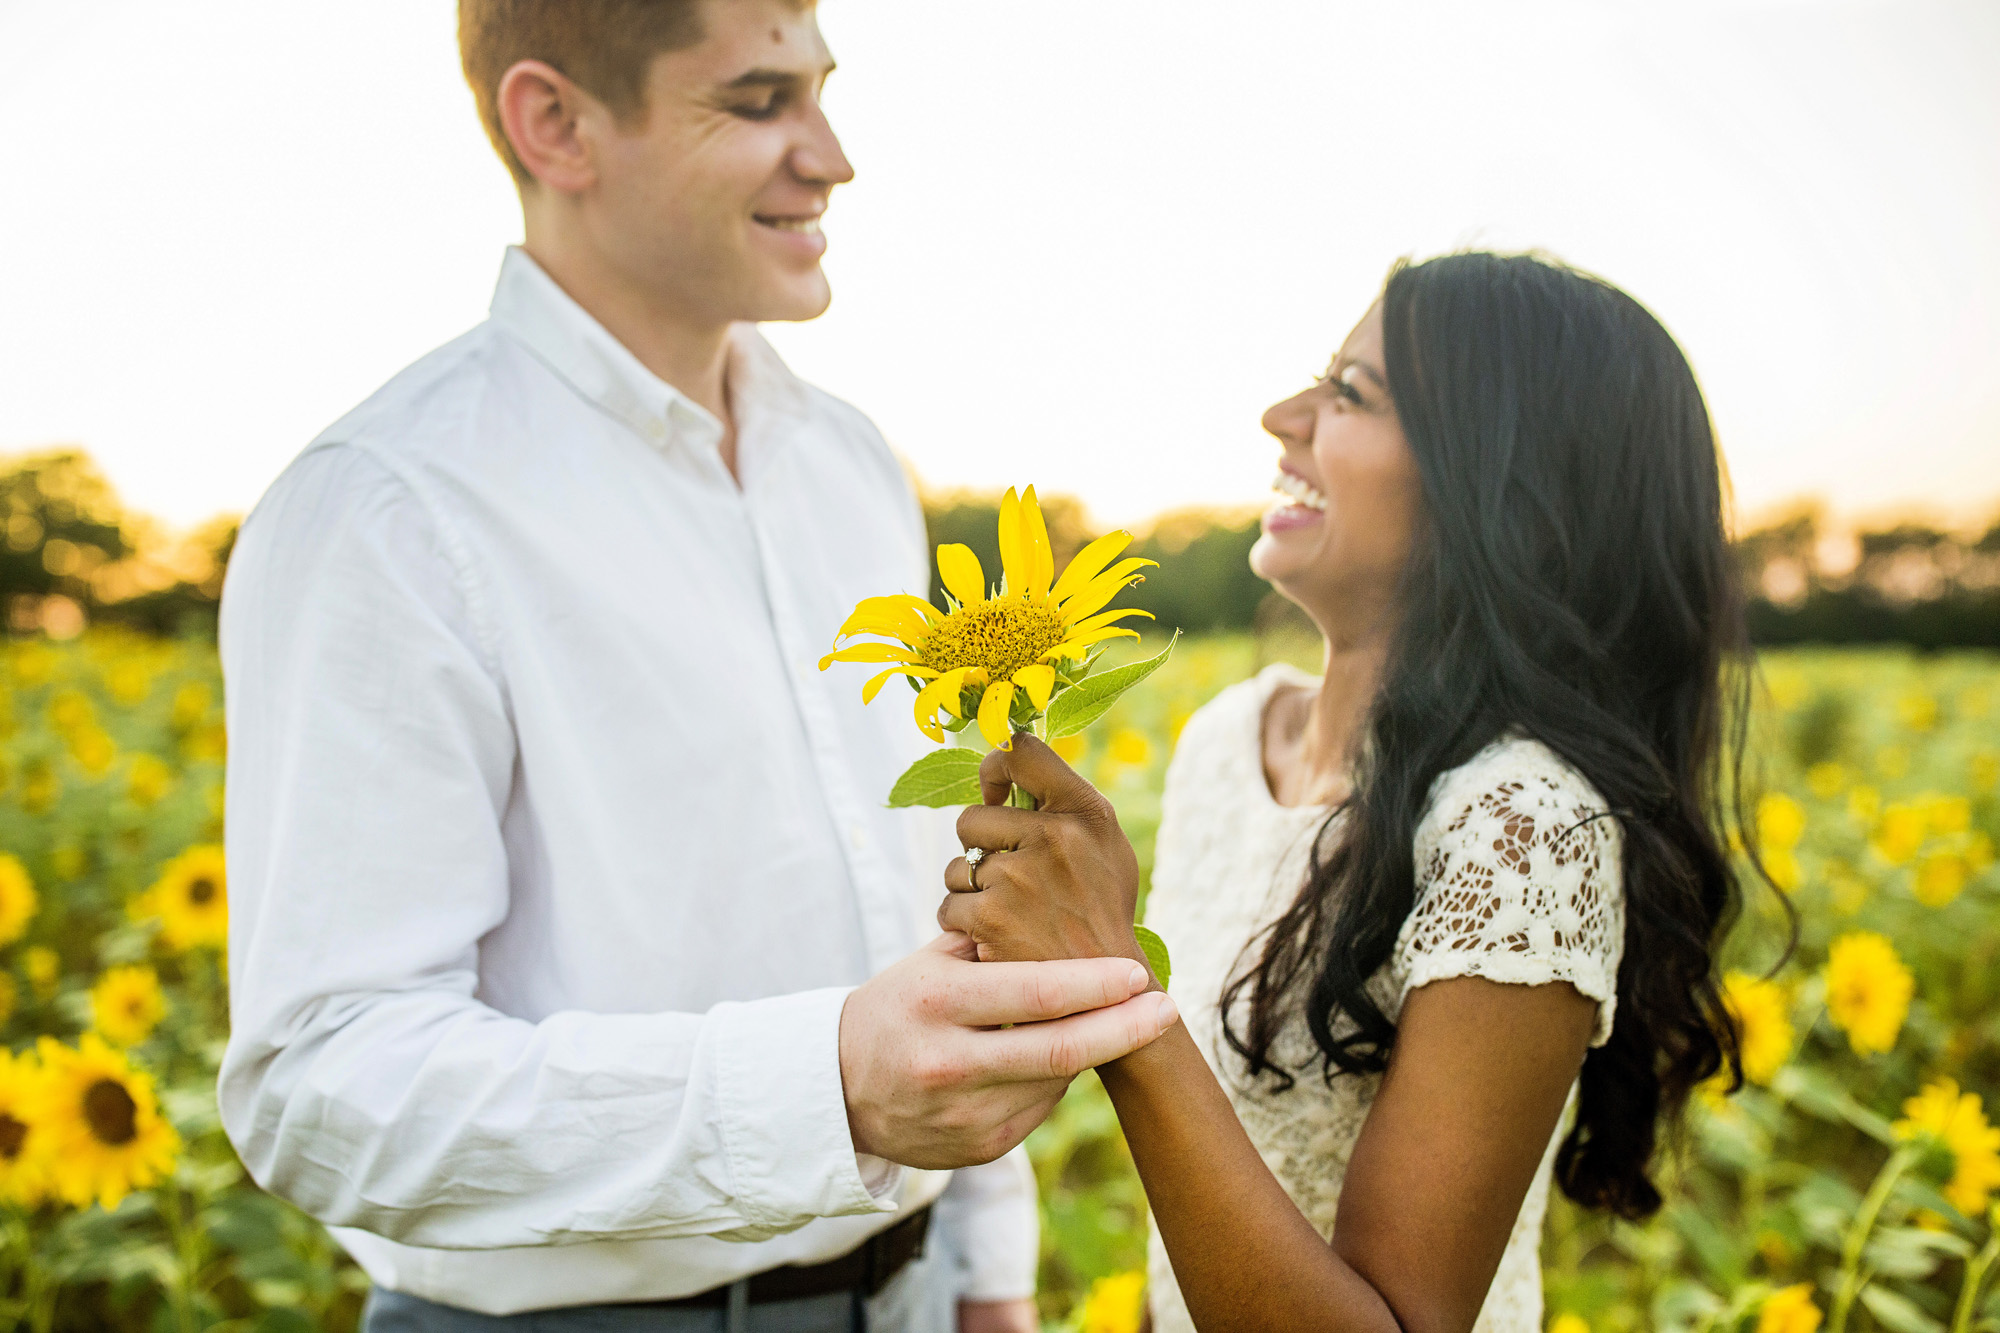 Seriously_Sabrina_Photography_Lexington_Midway_Kentucky_Engagement_Merefield_Sunflowers_Naz_and_Drew6.jpg